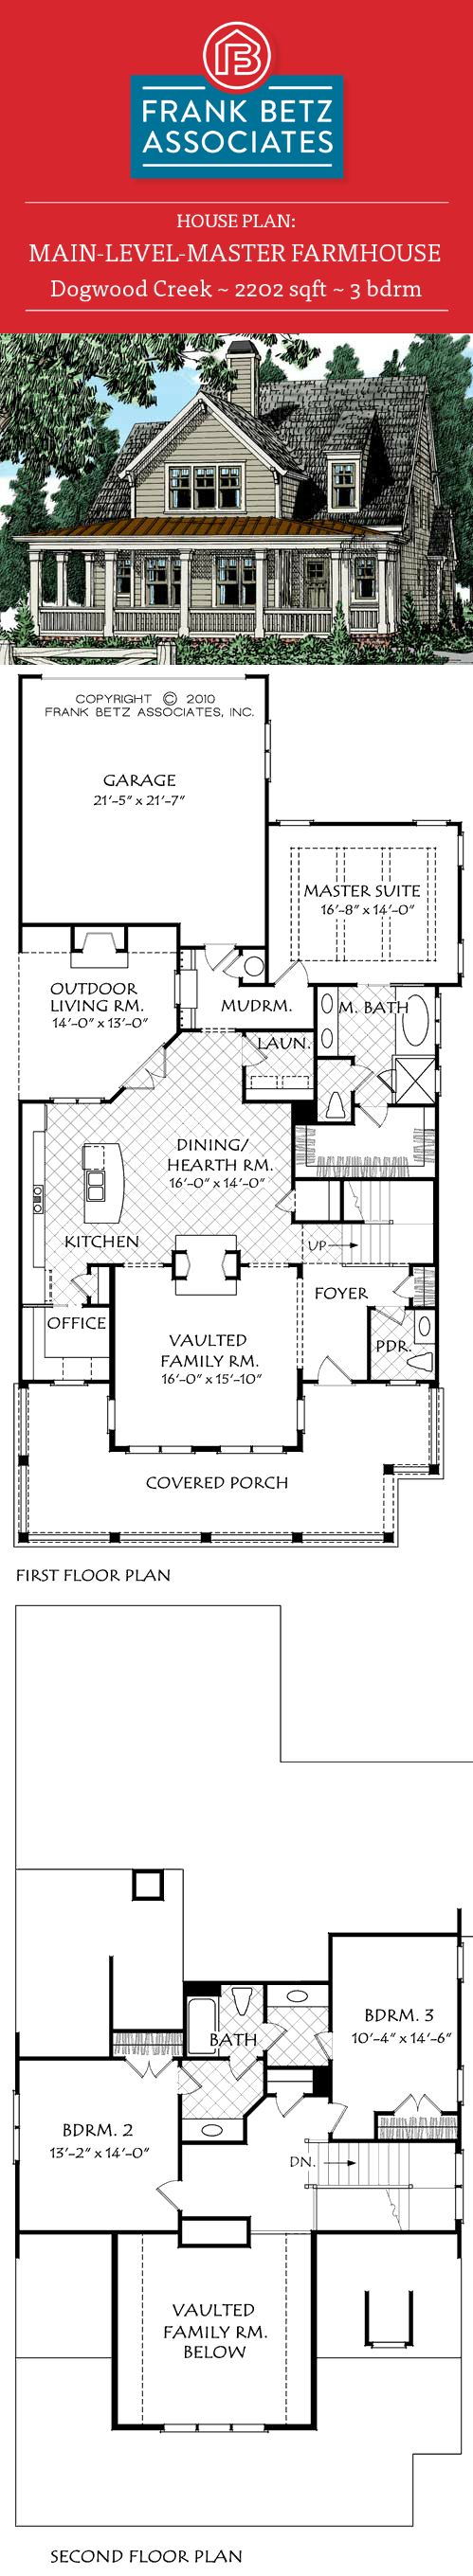 17 best images about main level master house plans on for Frank betz floor plans